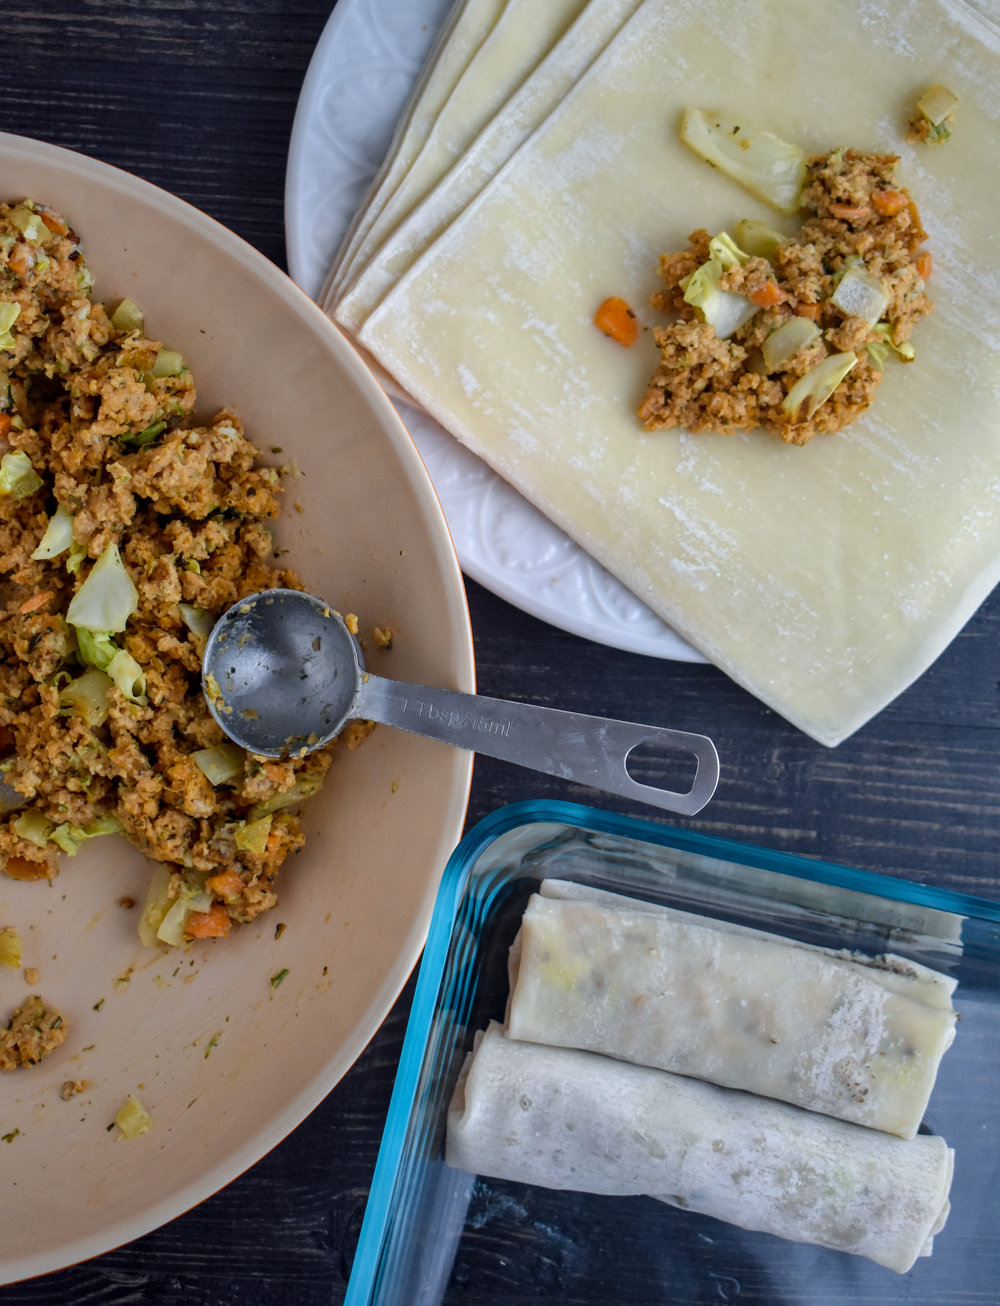 9. Finally, we are ready to form our spring rolls. Fill each wrapper with 2 tbl of the mixture until you run out. I made about 9 (8 and a wee one).